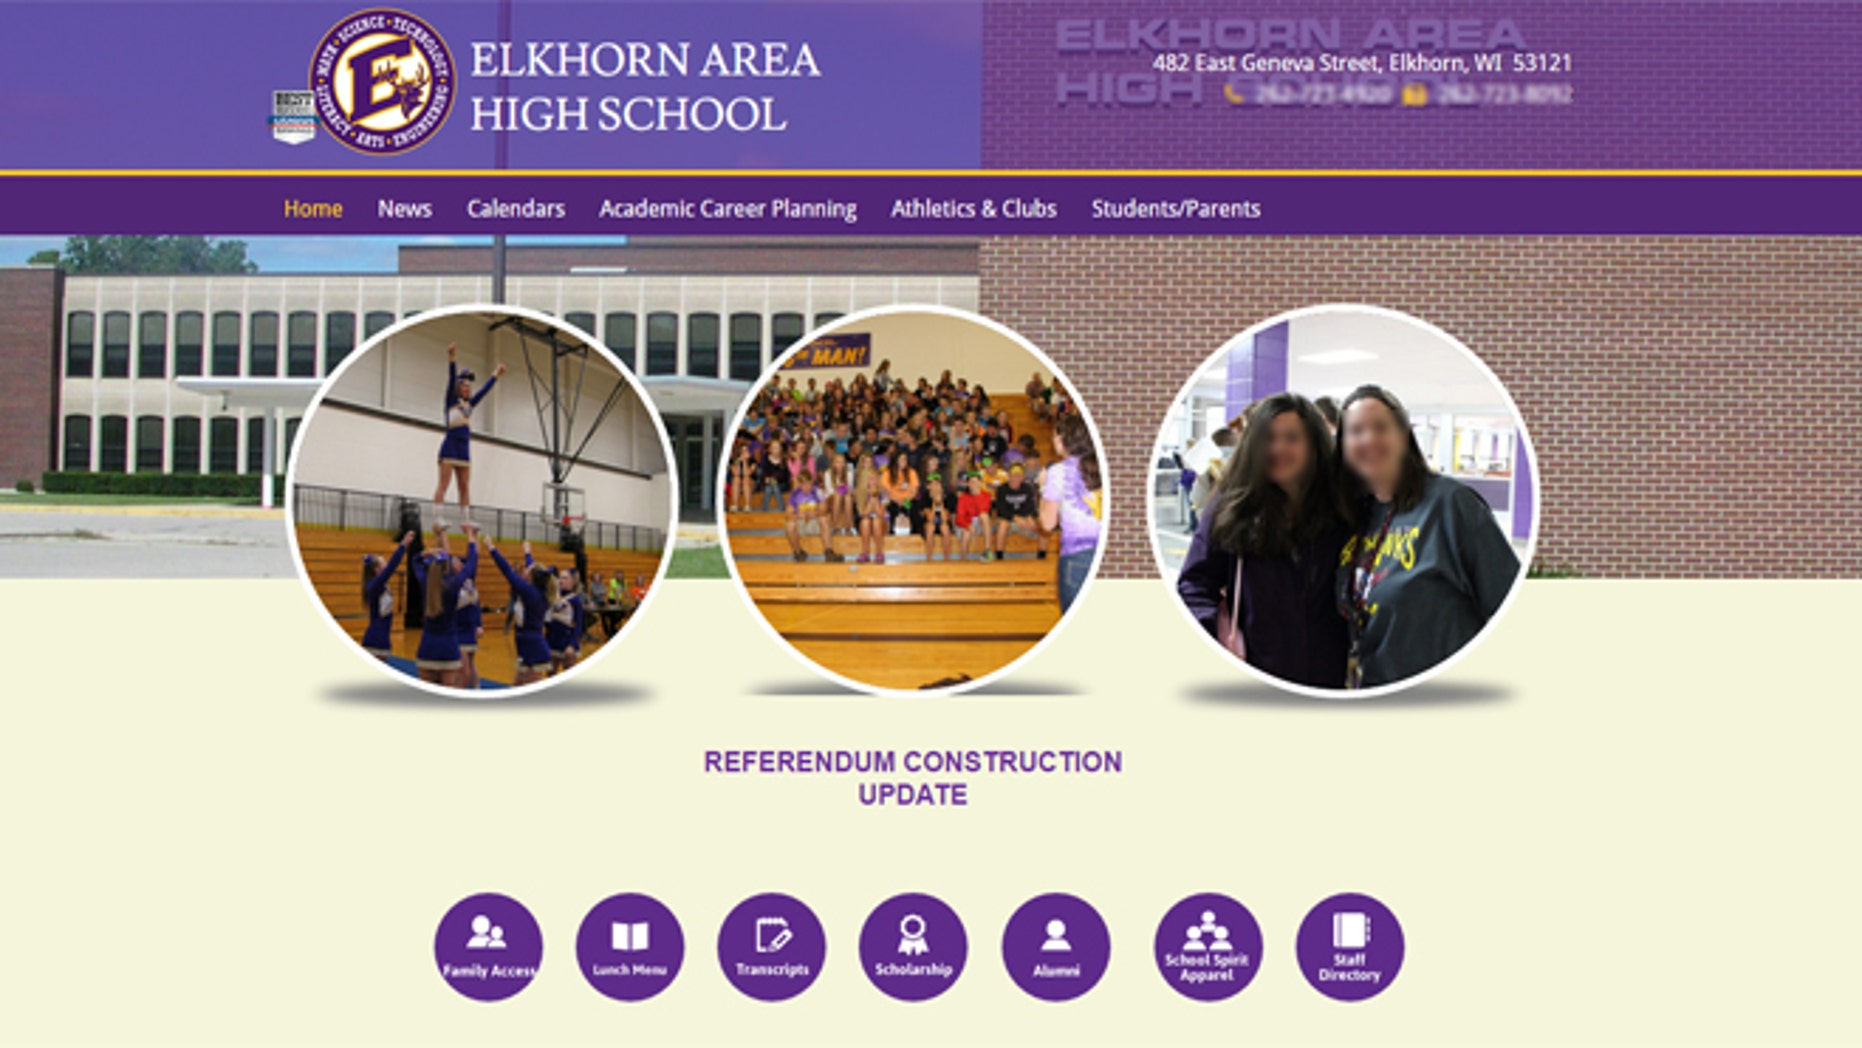 Elkhorn Area High School, where fans chanted racist comments at minority players.